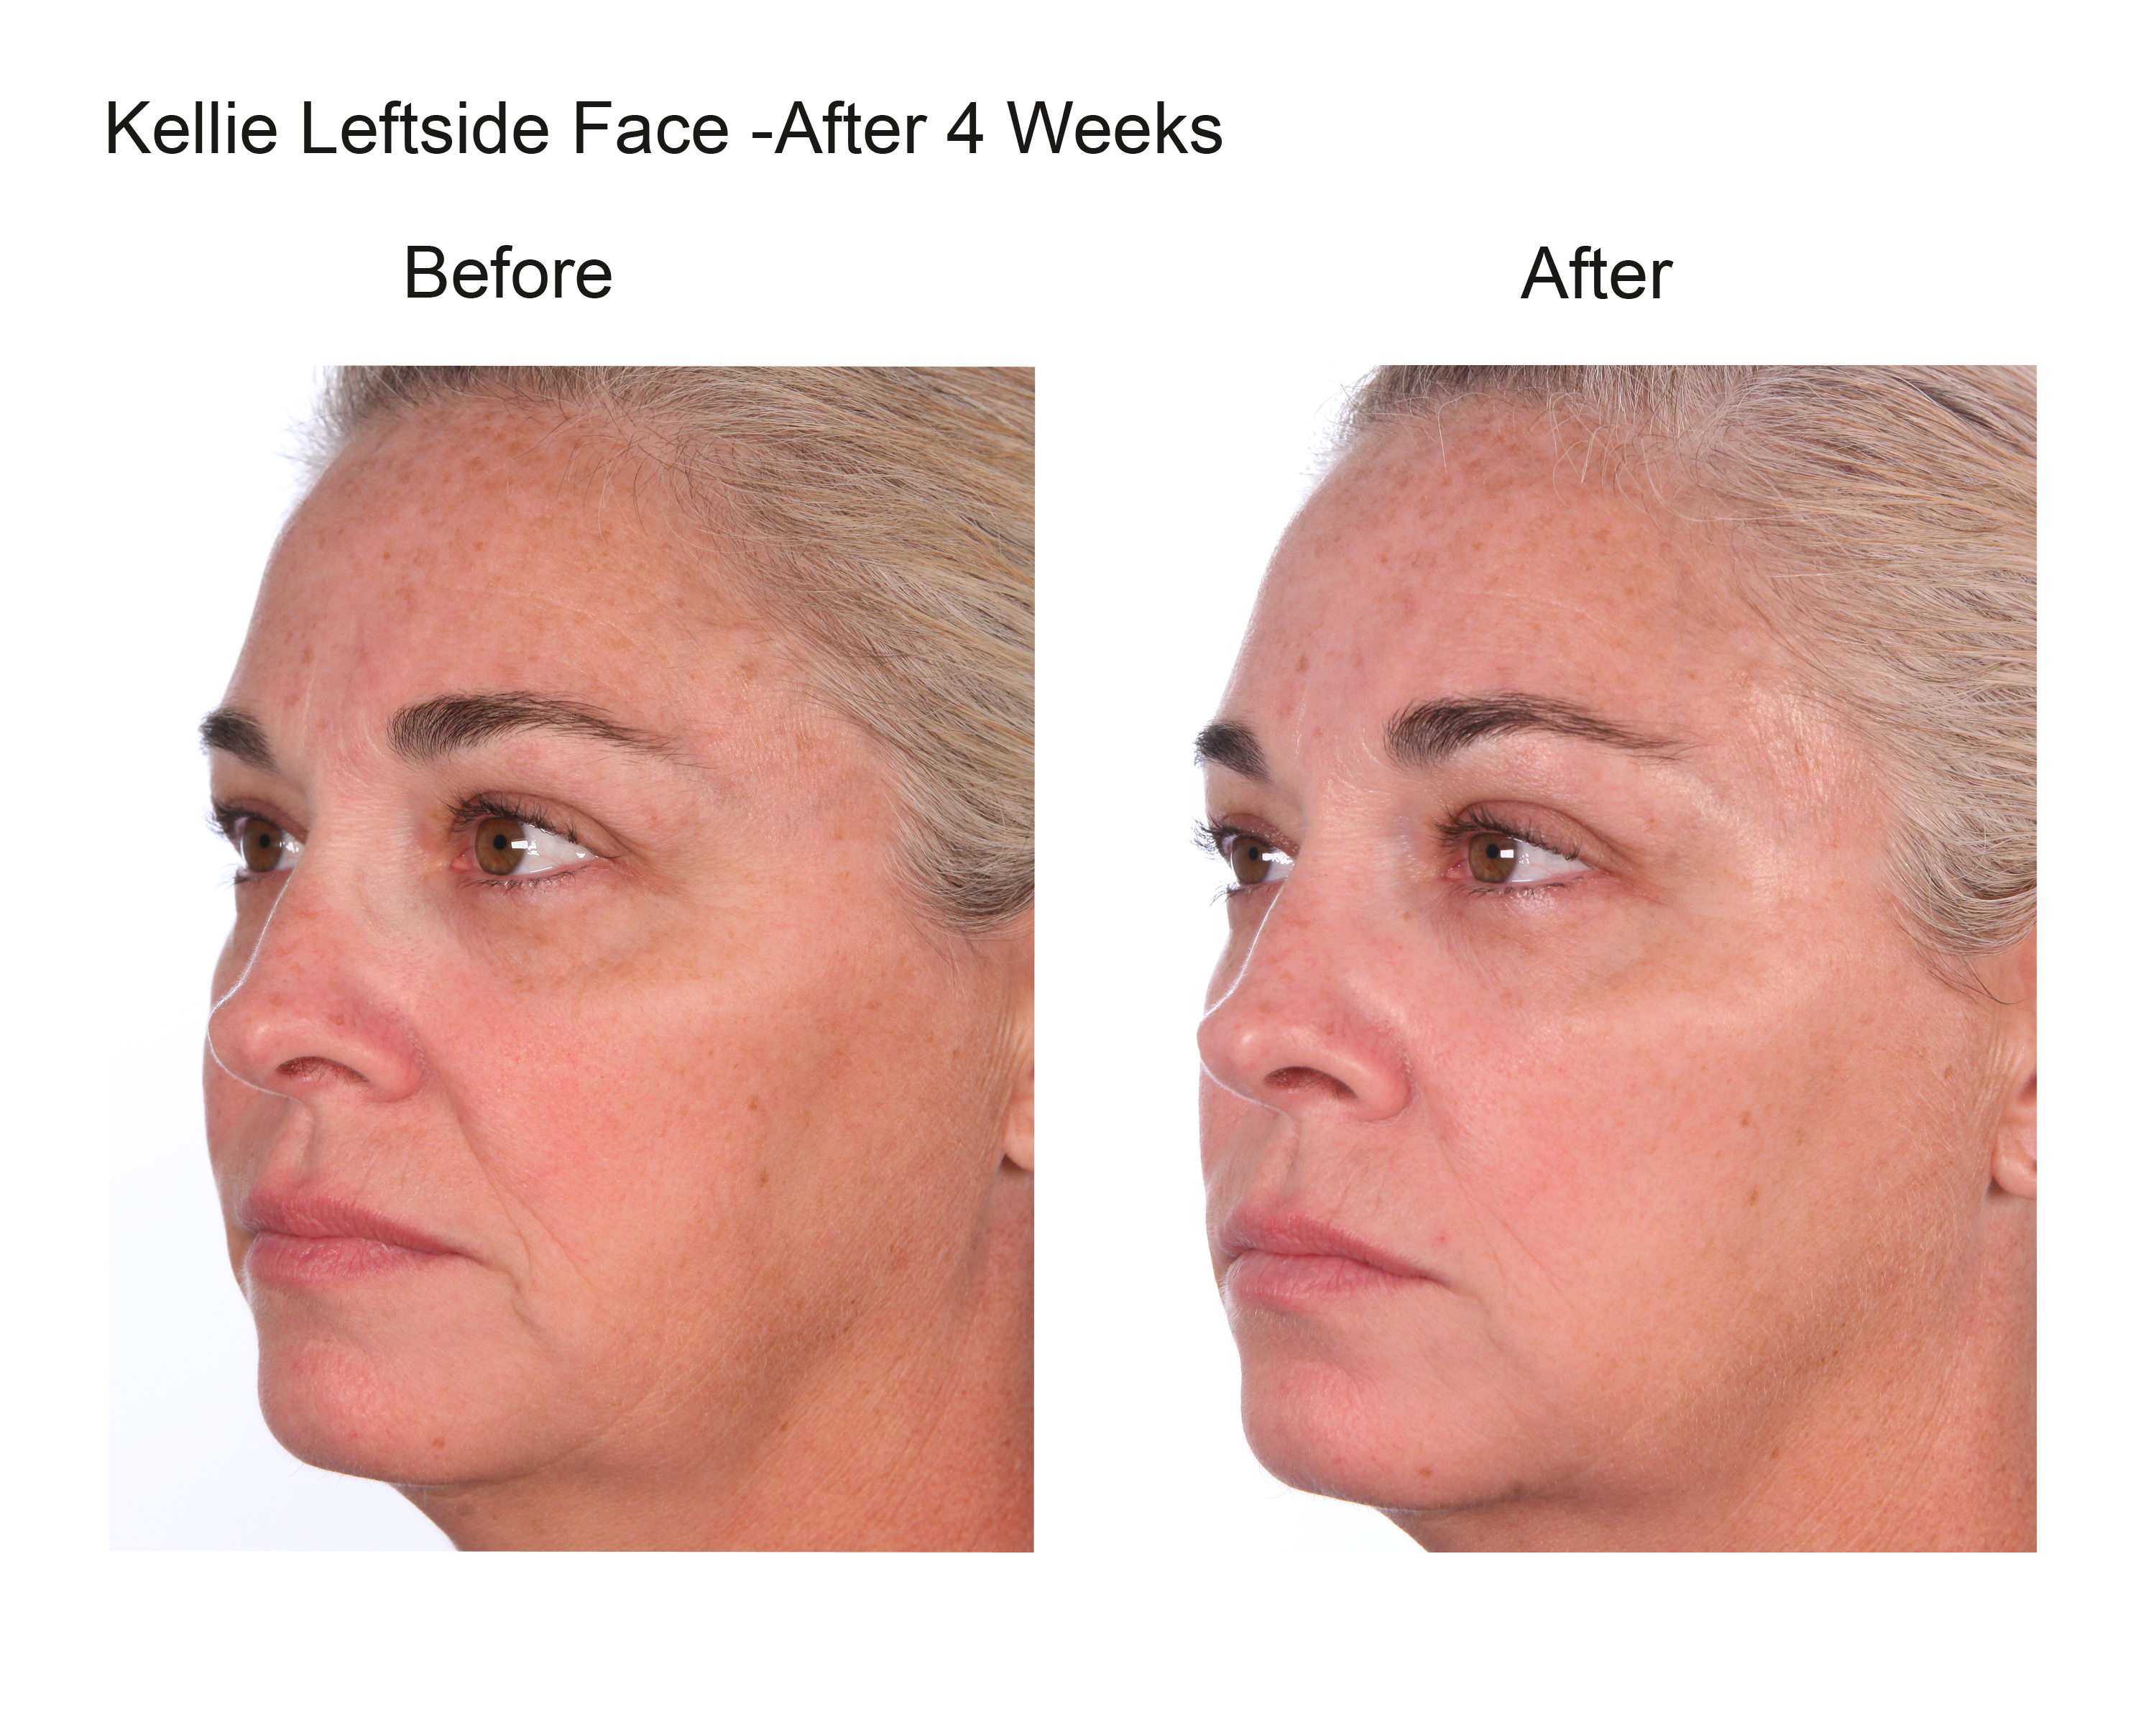 Kellie Leftside Face After 4 Weeks (3)